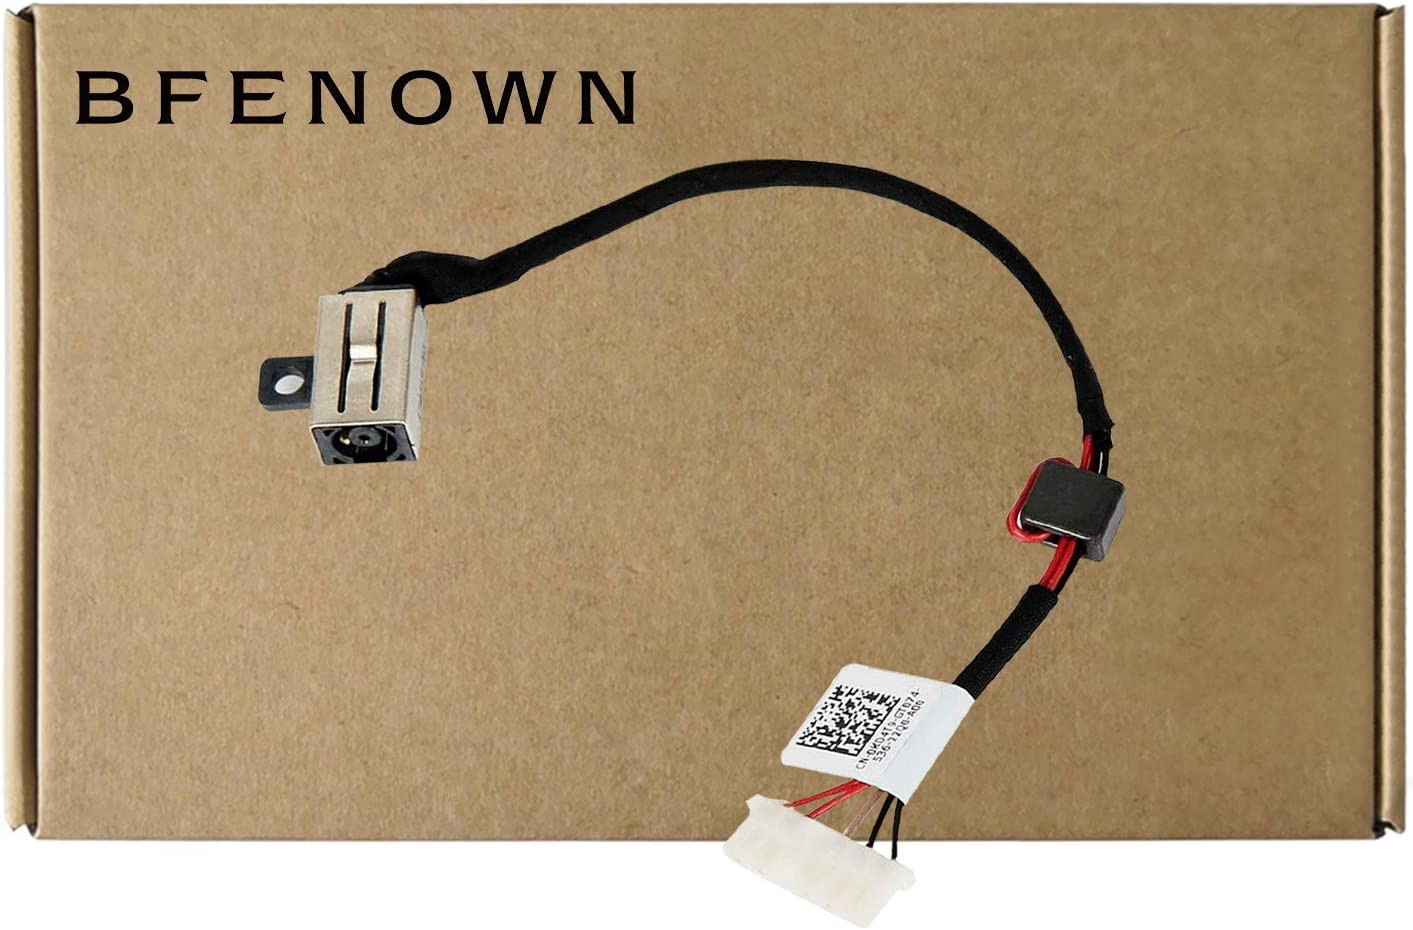 Bfenown DC Power Jack Harness Cable Plug for Dell Inspiron 15 3000 15-5000 5551 5552 5555 5557 5558 5559 14-5458 5459 5455 5452 P51F P64G DC30100UD00 Vostro 3458 3558 3559 P65G 3559 17-5000 5755 KD4T9